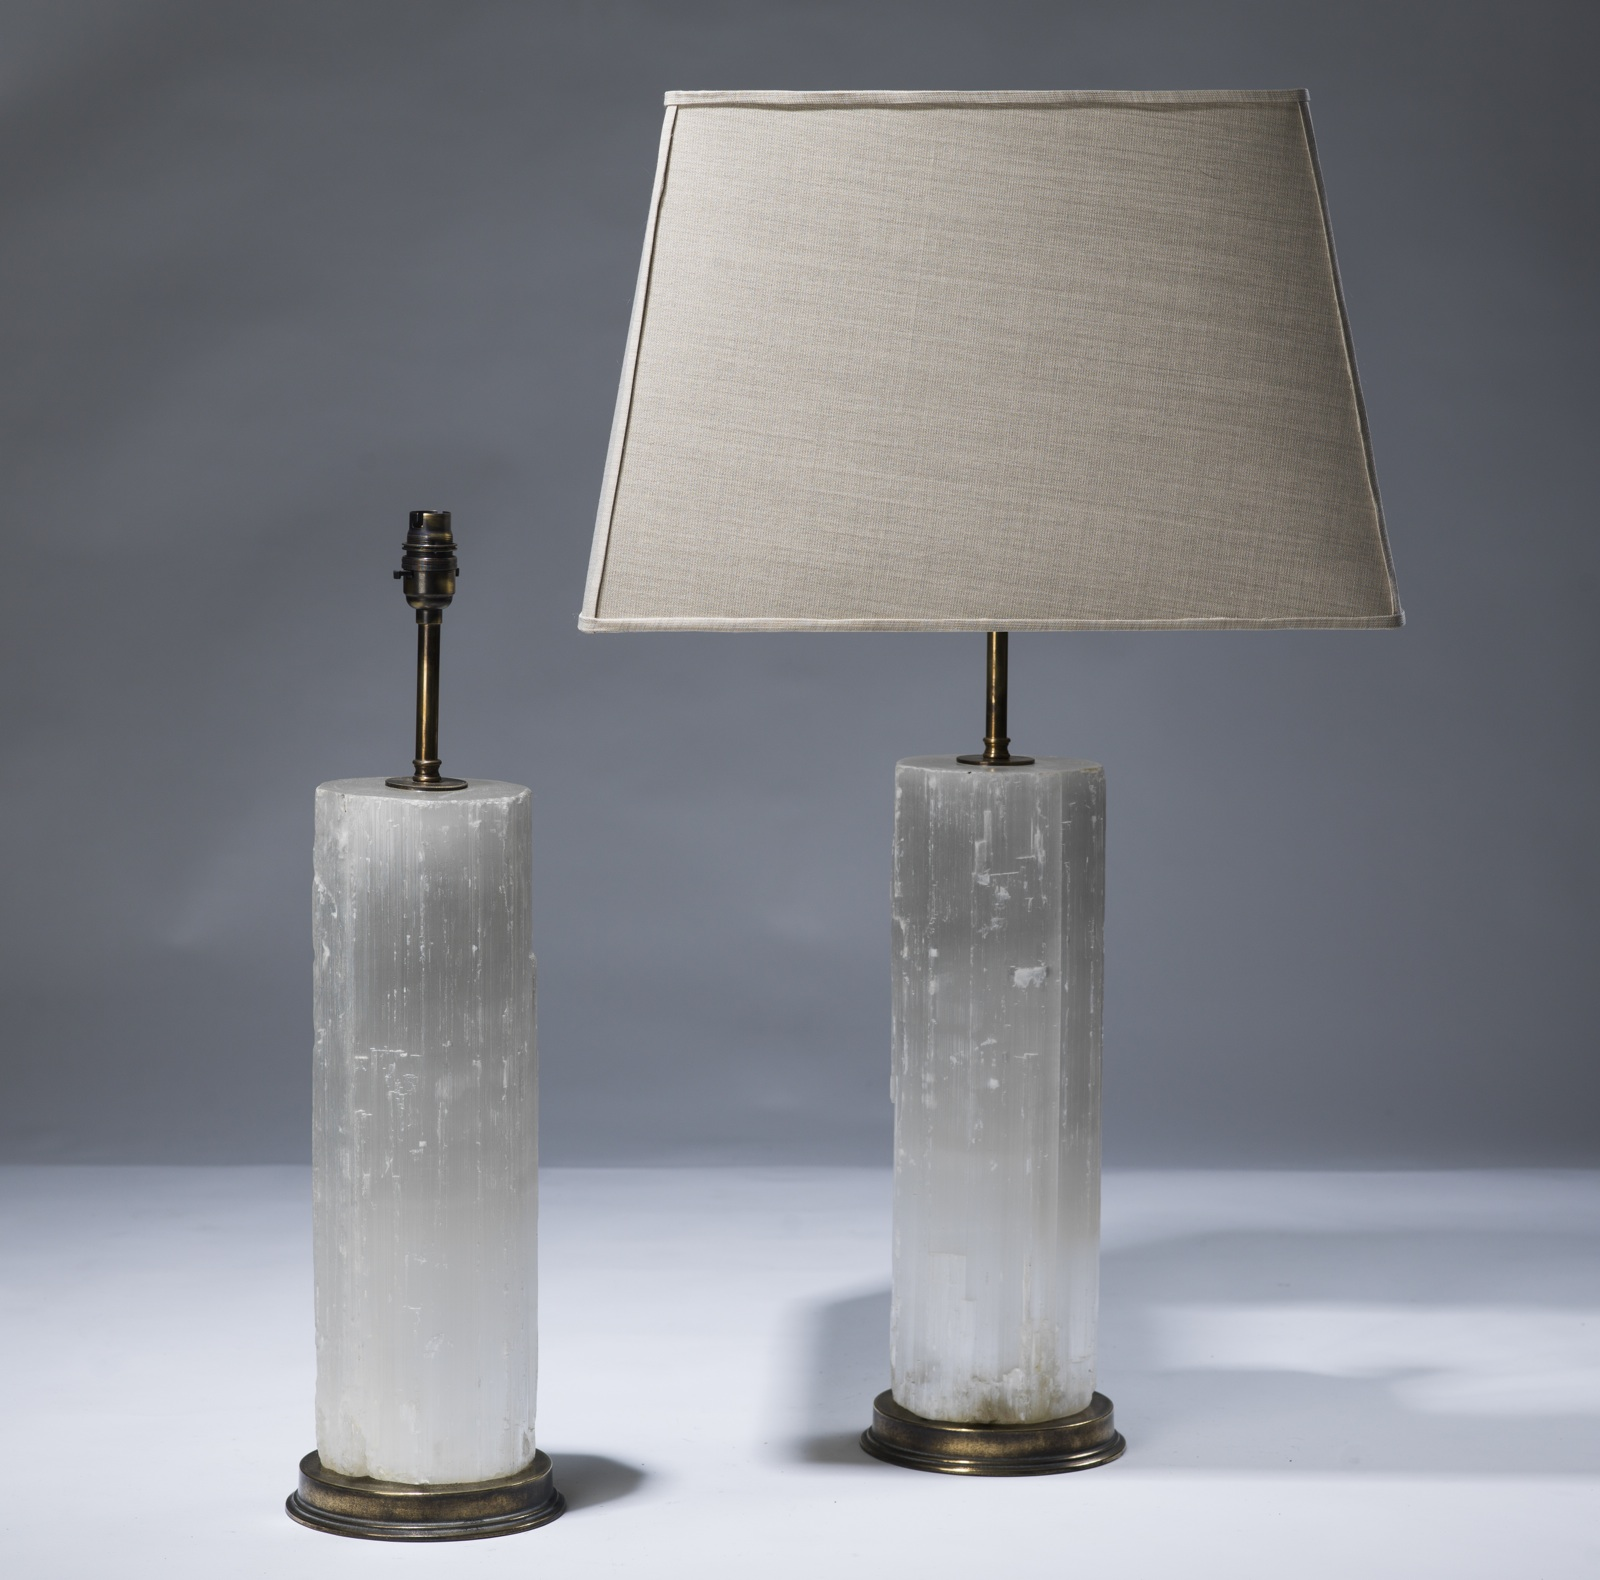 Marvelous Pair Of Large Clear Selenite Lamps On Distressed Brass Bases